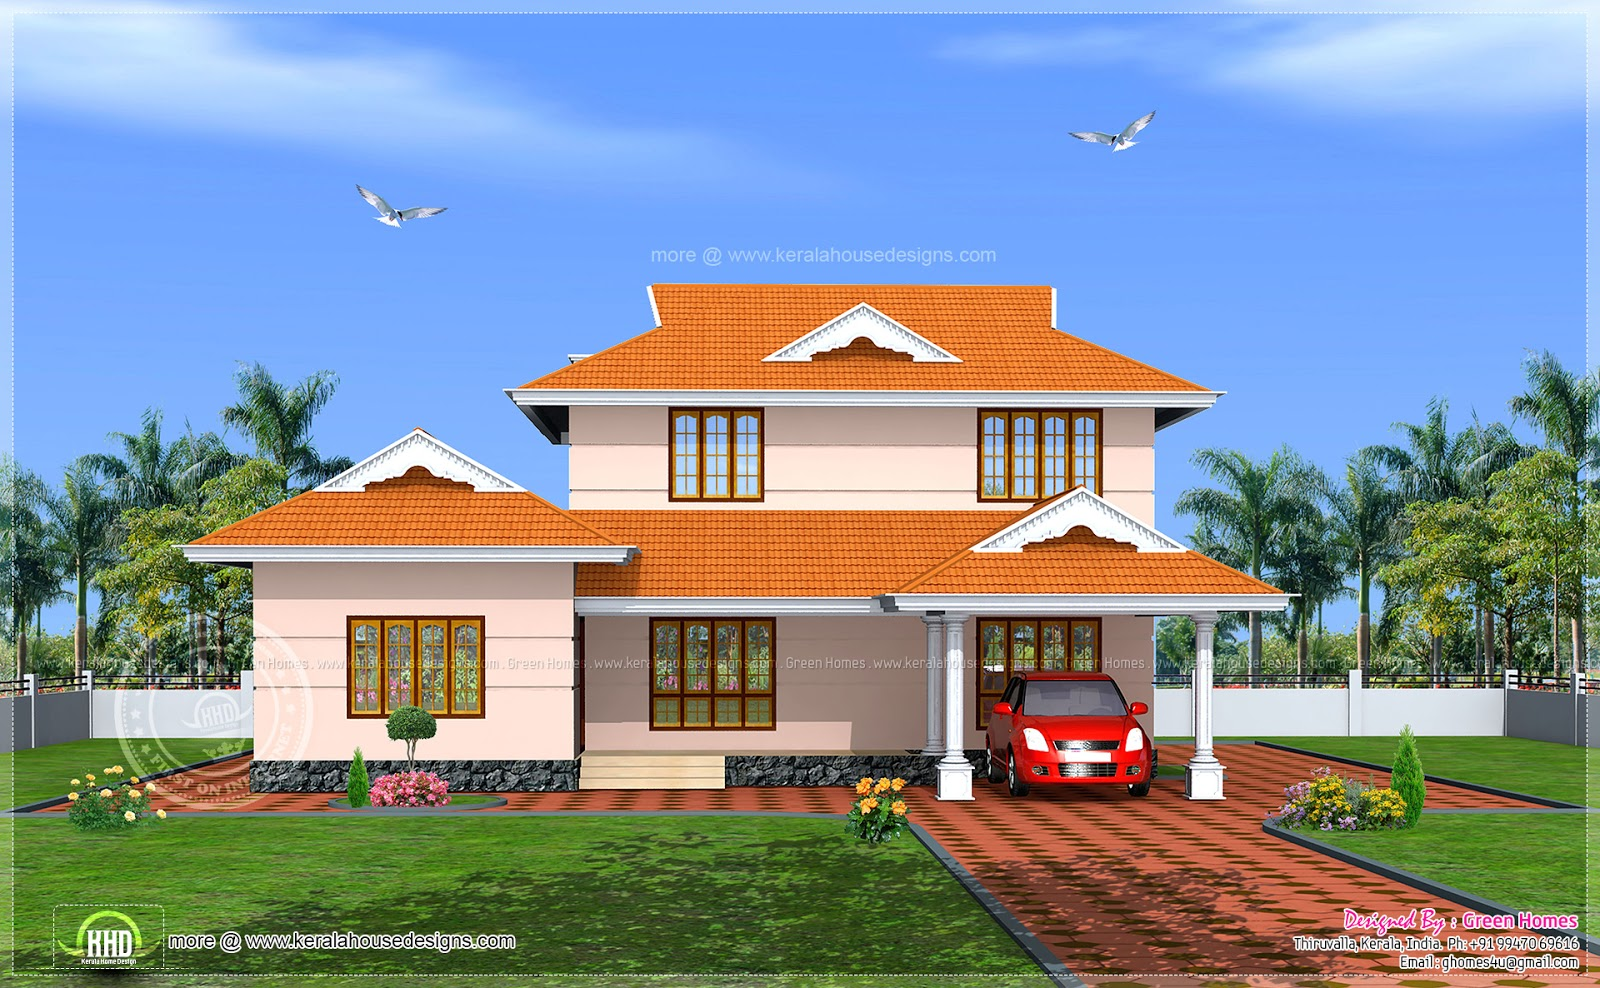 House plans and design house plans in kerala model with for Model house design